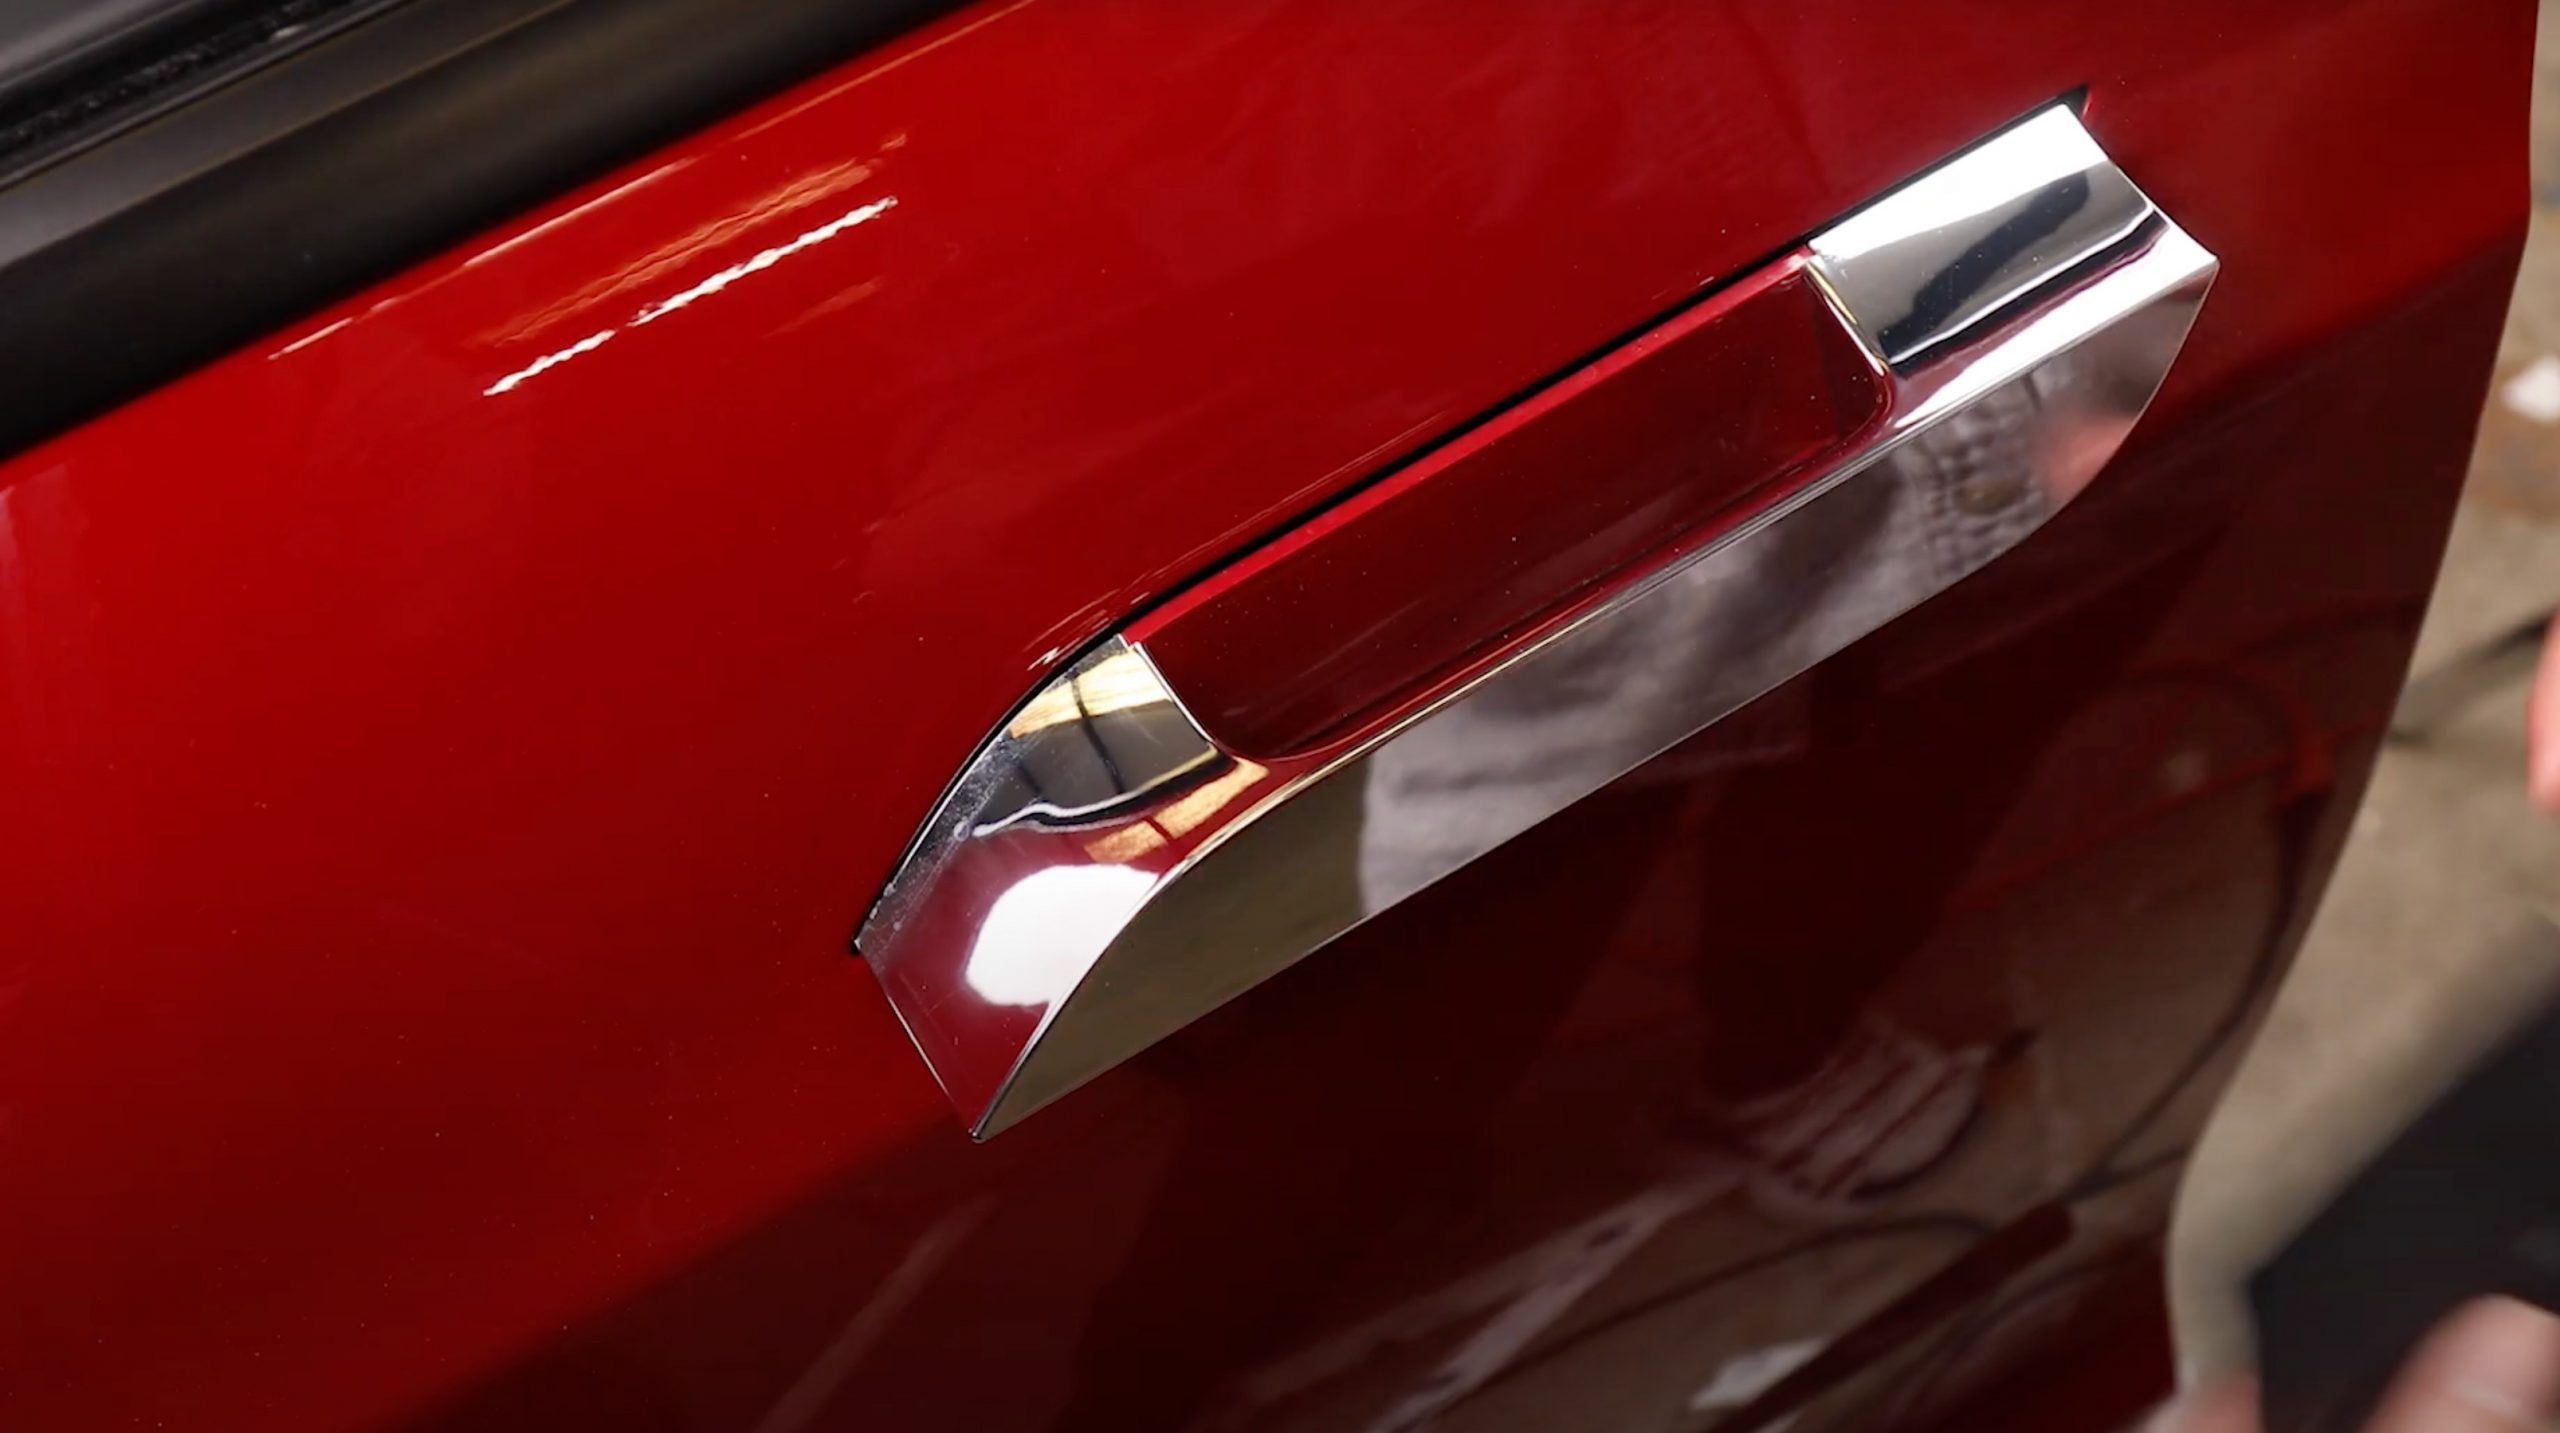 Tesla Model S self-presenting door handle